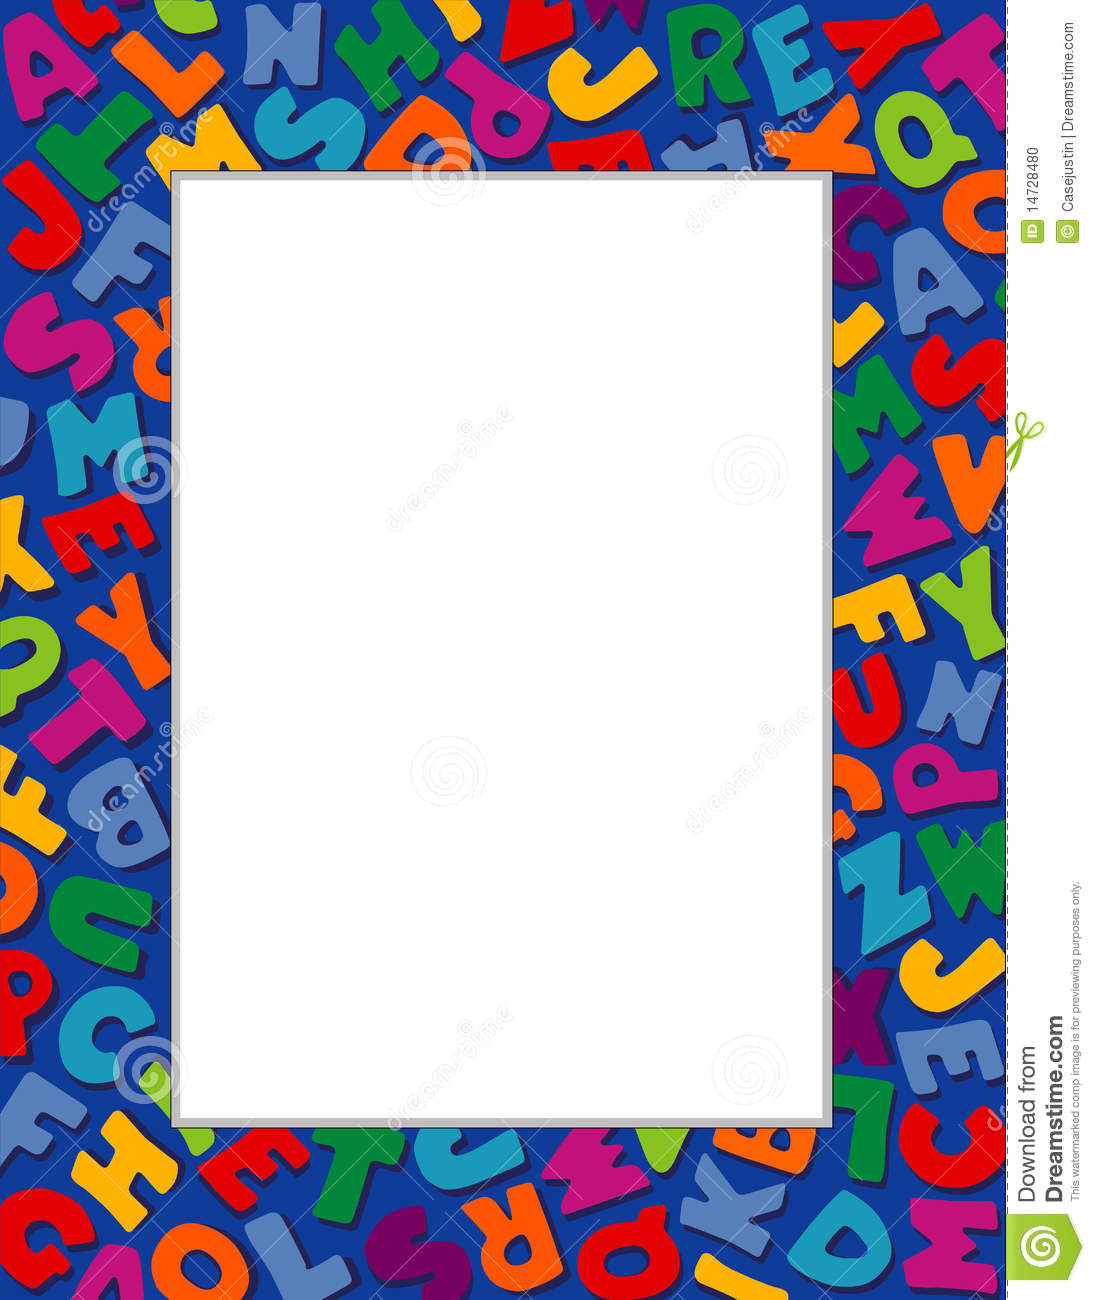 Alphabet Frame Blue Background Stock Photo Image 14728480